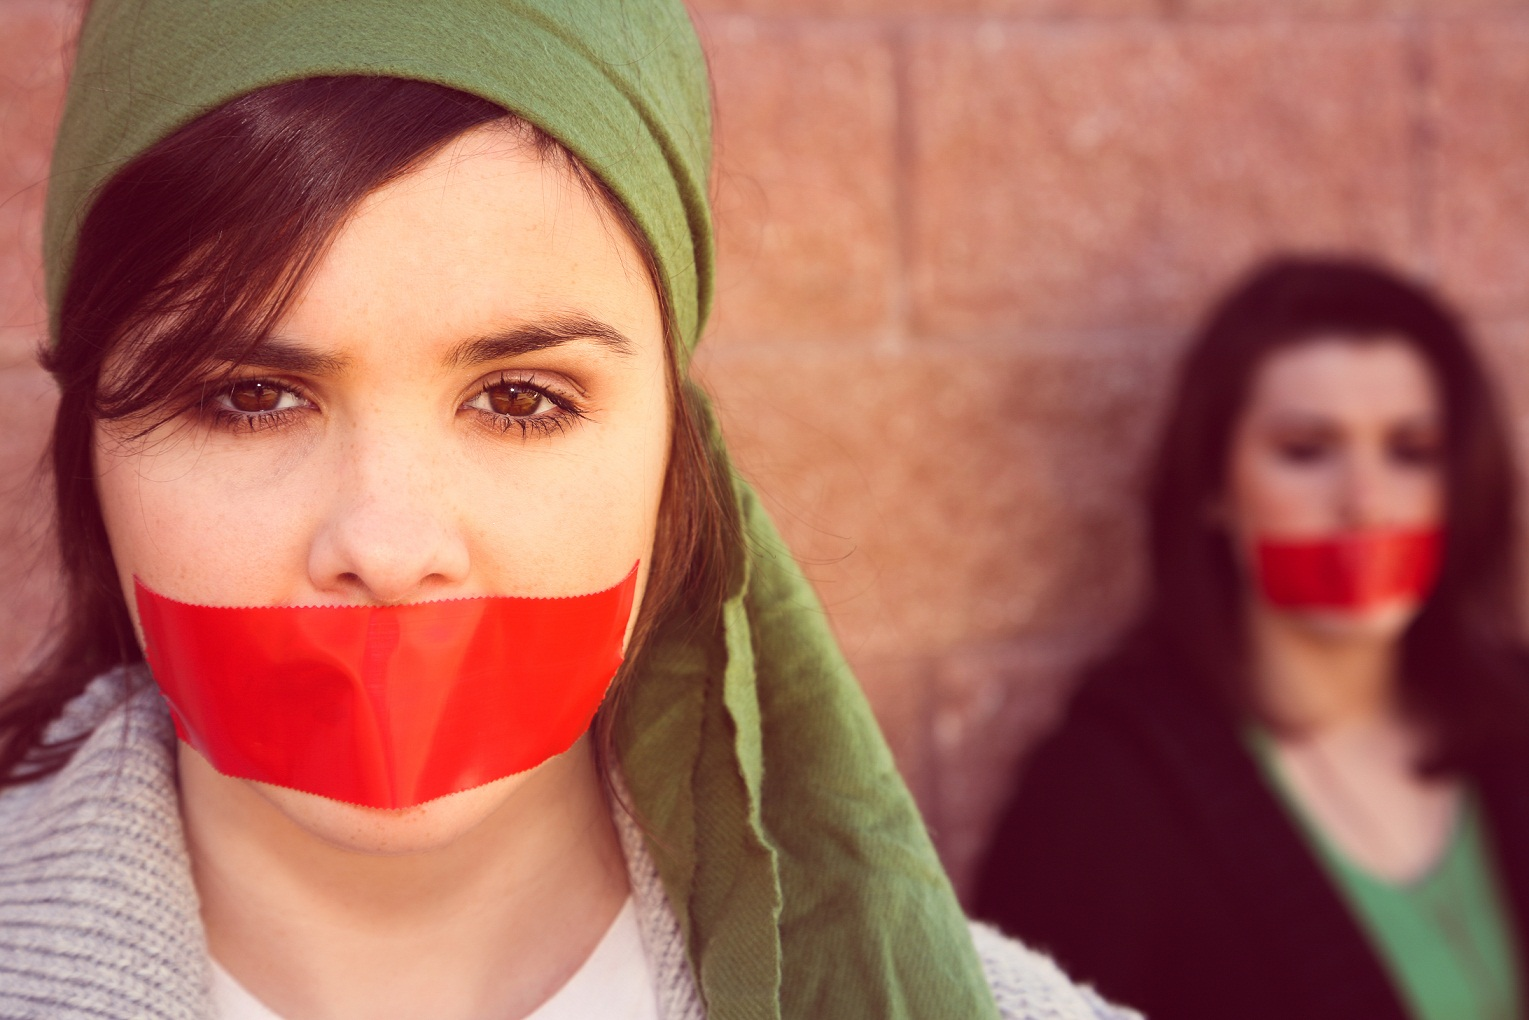 two women with red tape across their mouths